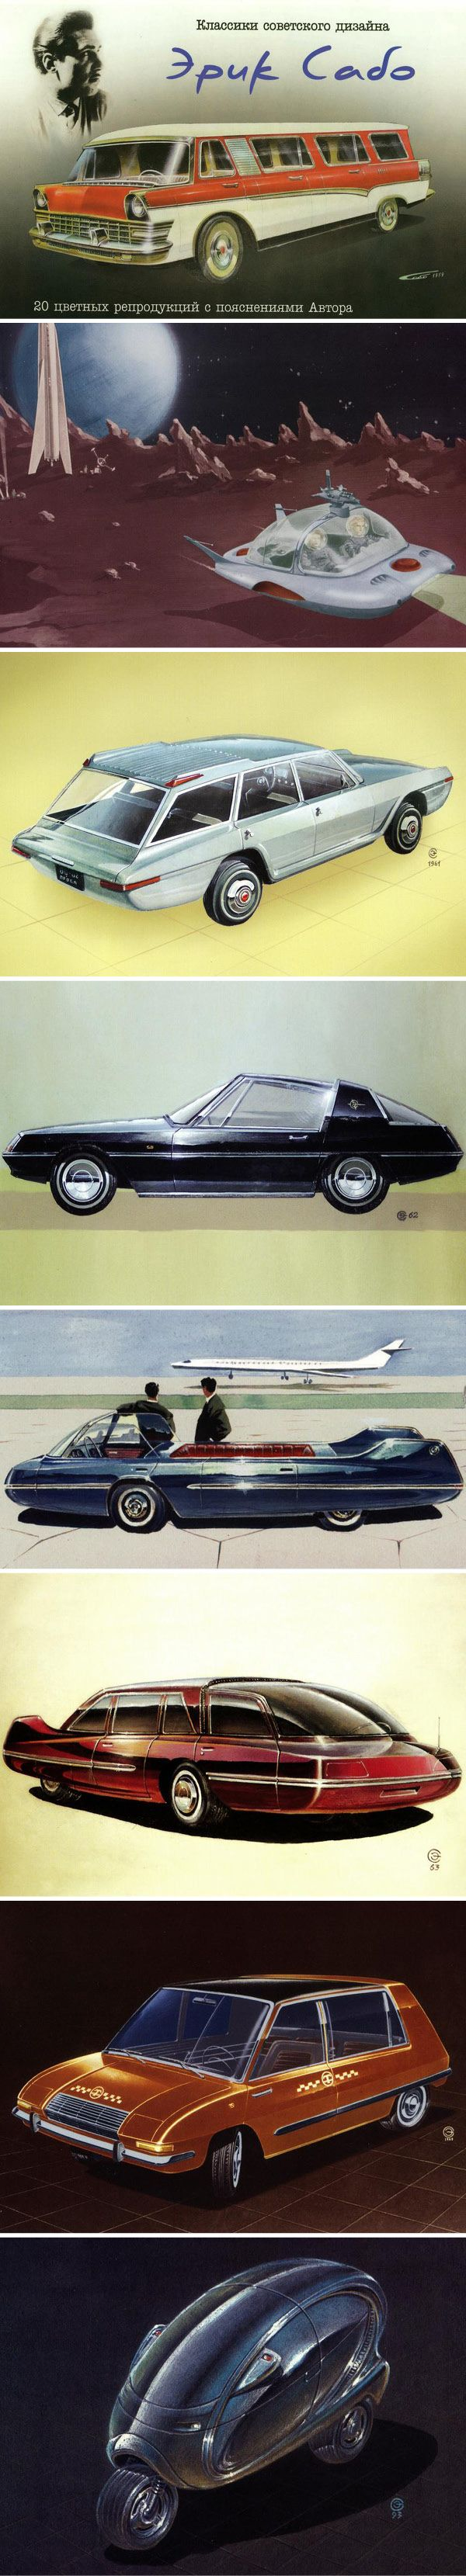 Luxury caravan with full size sports car garage from futuria - 1959 S To 1993 Soviet Car Design Post Cards Featuring Renderings By Eric Szabo